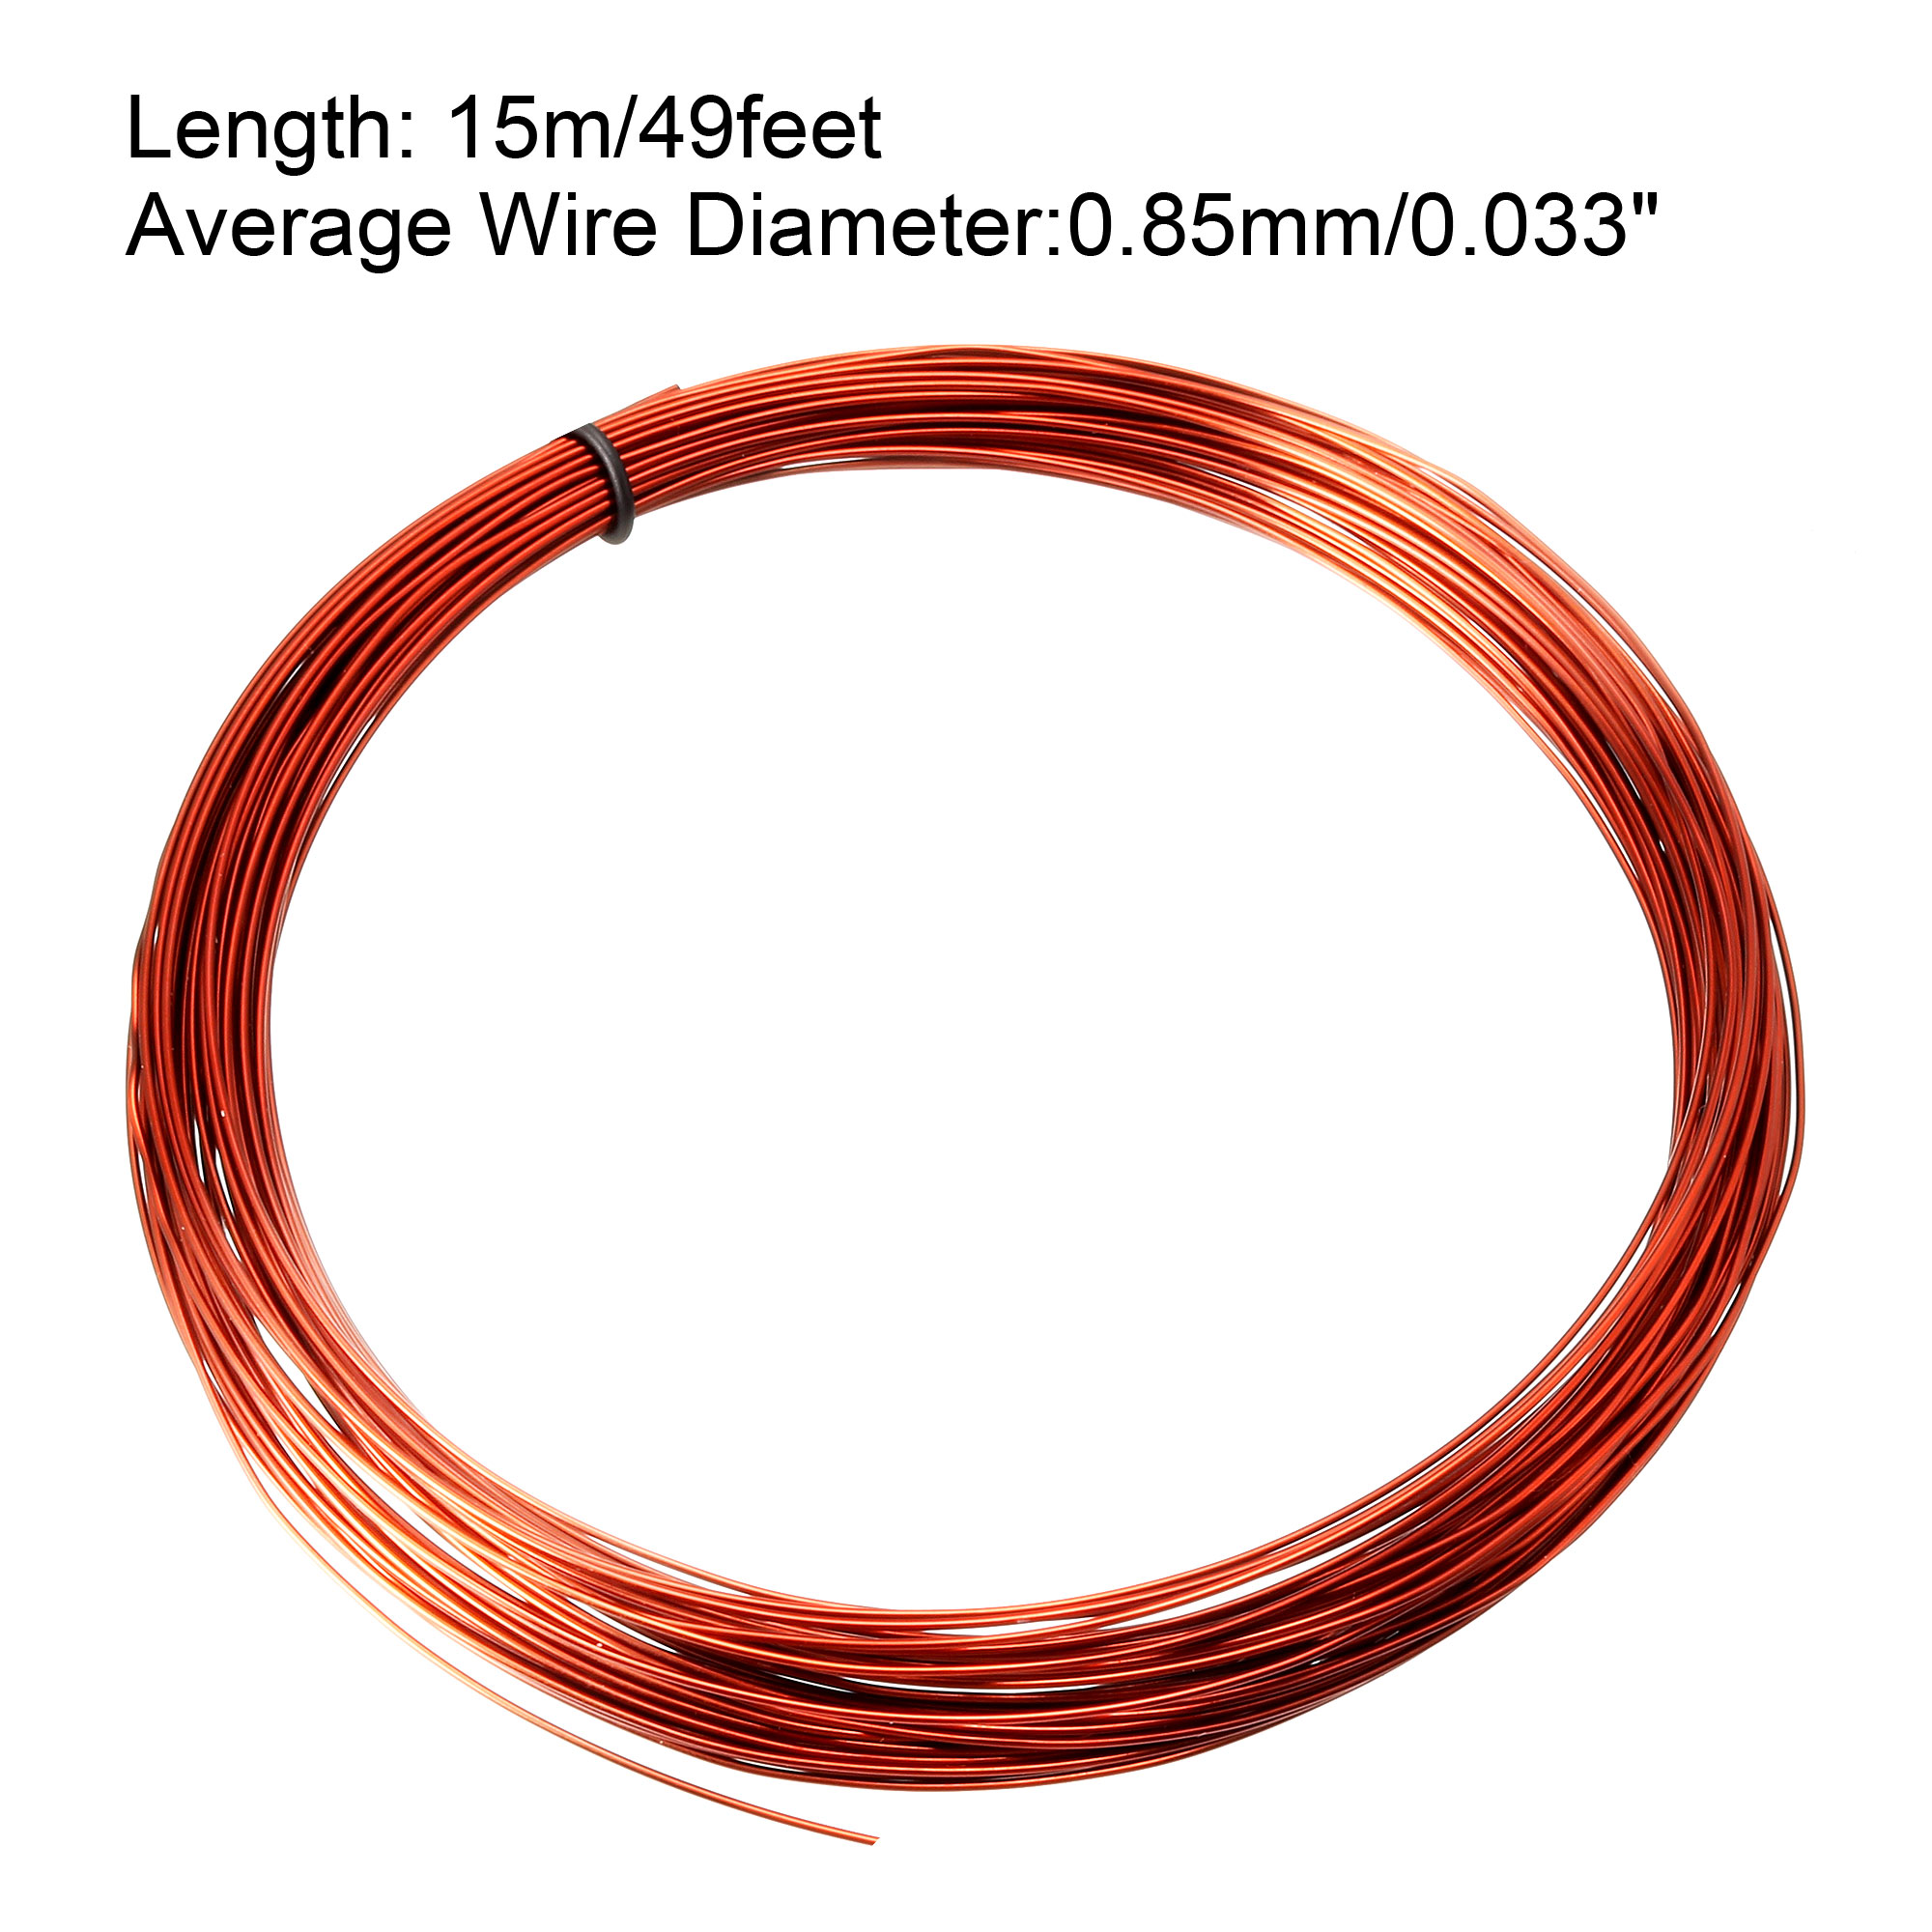 0.85mm Dia Magnet Wire Enameled Copper Wire Winding Coil 49' Length Widely Used for Transformers Inductors - image 2 de 3